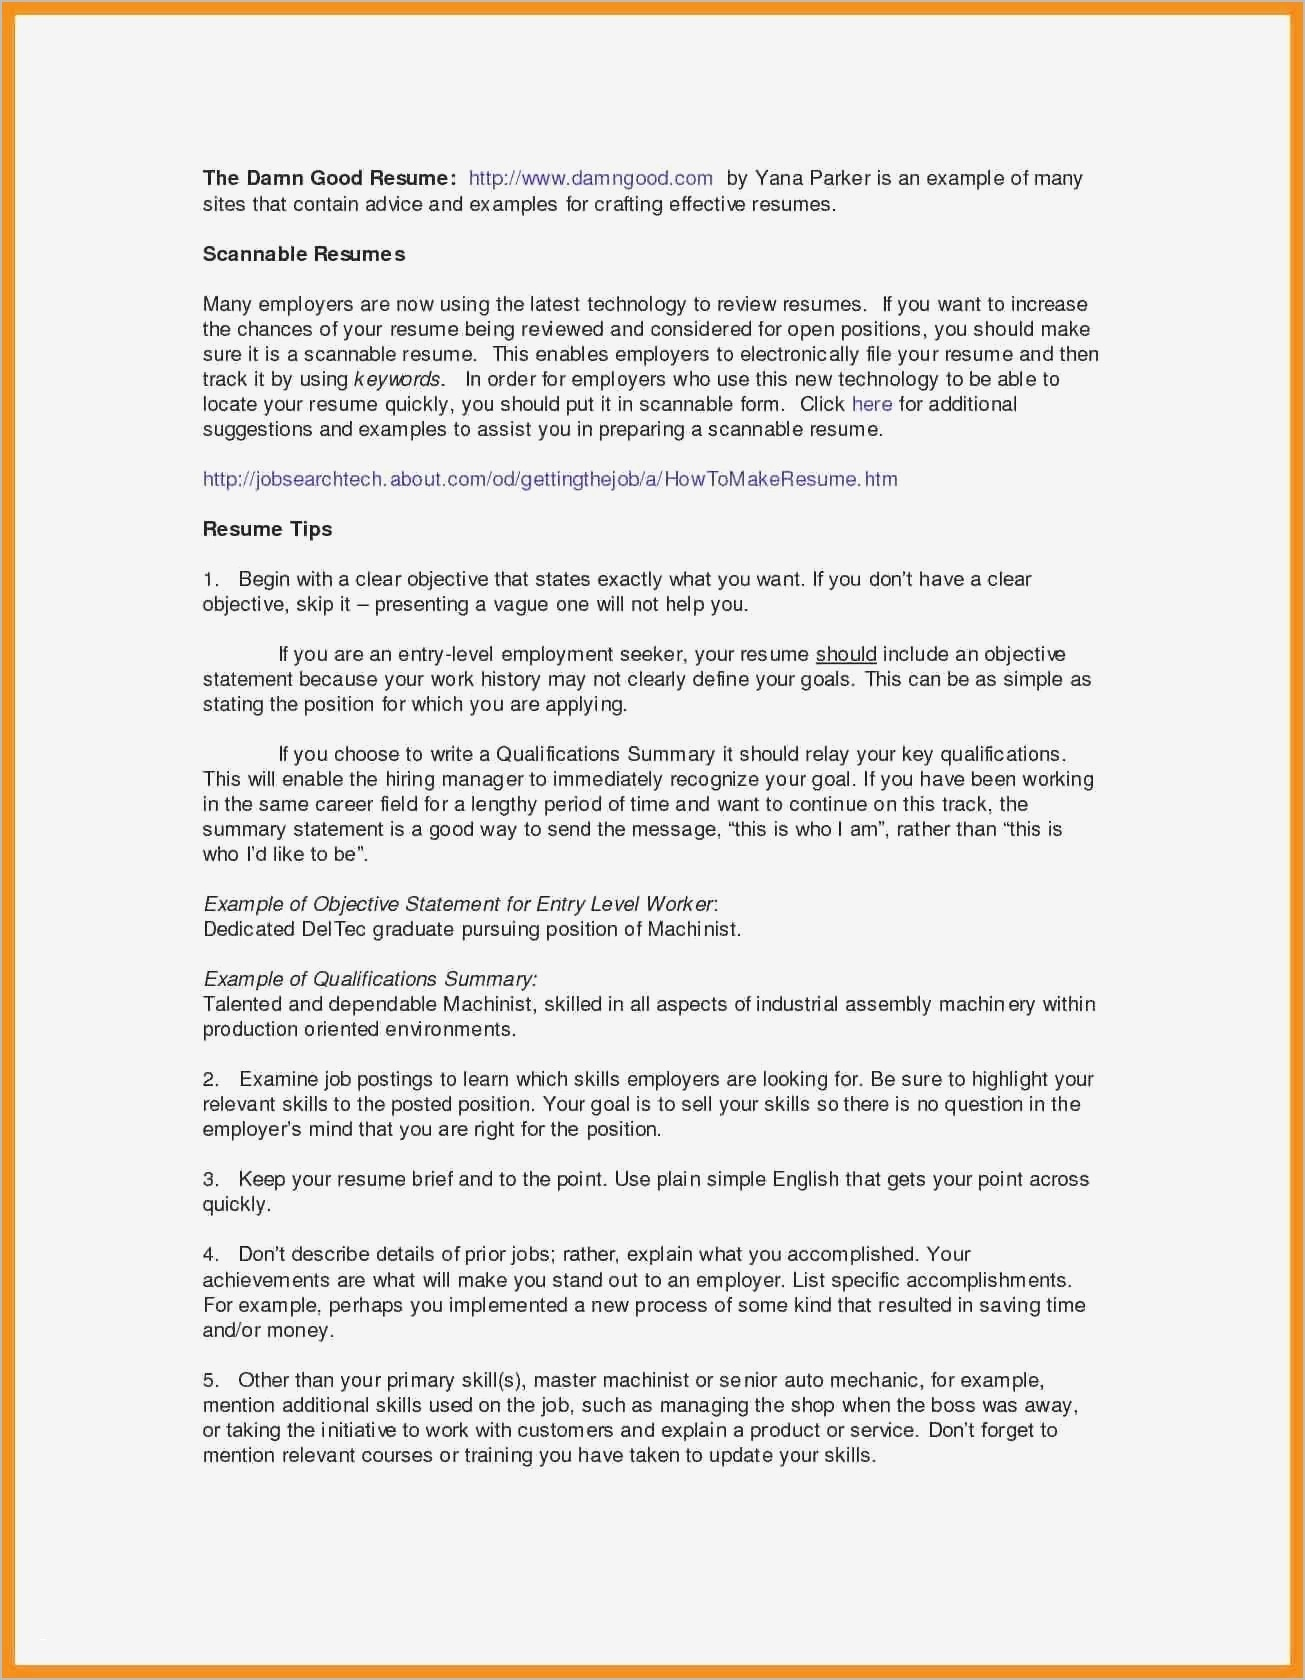 Resume Opening Statements Examples - Resume Mission Statement Examples Beautiful Resume Objective